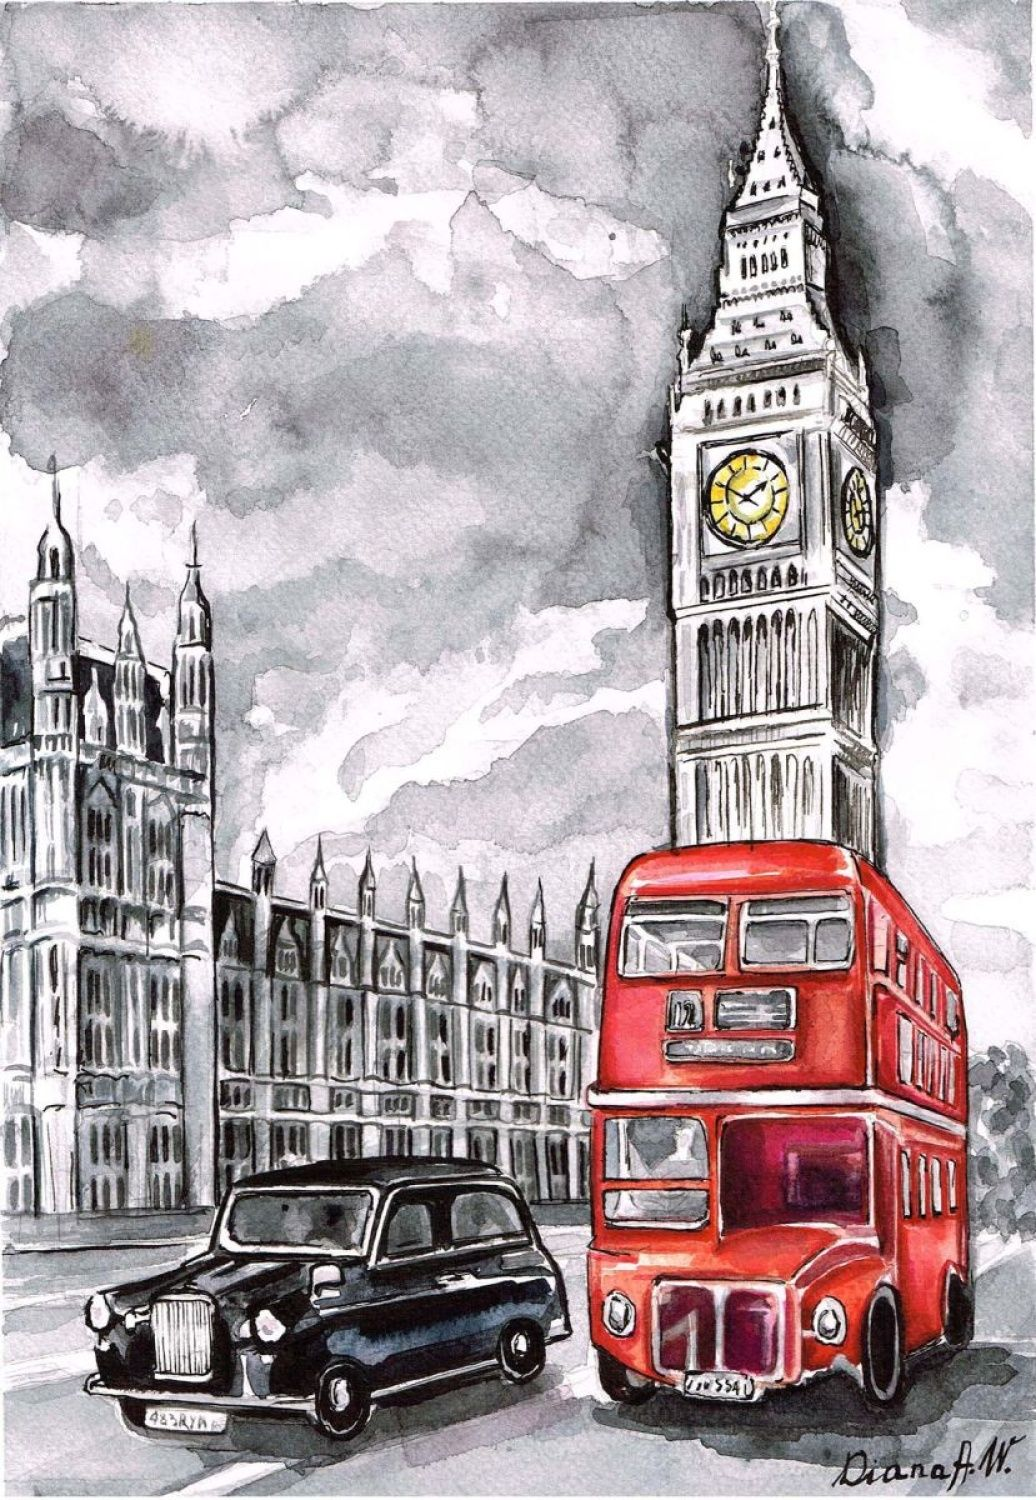 Red House Drawing: London, Westminster, Big Ben, Red Bus, Black Taxi Cab